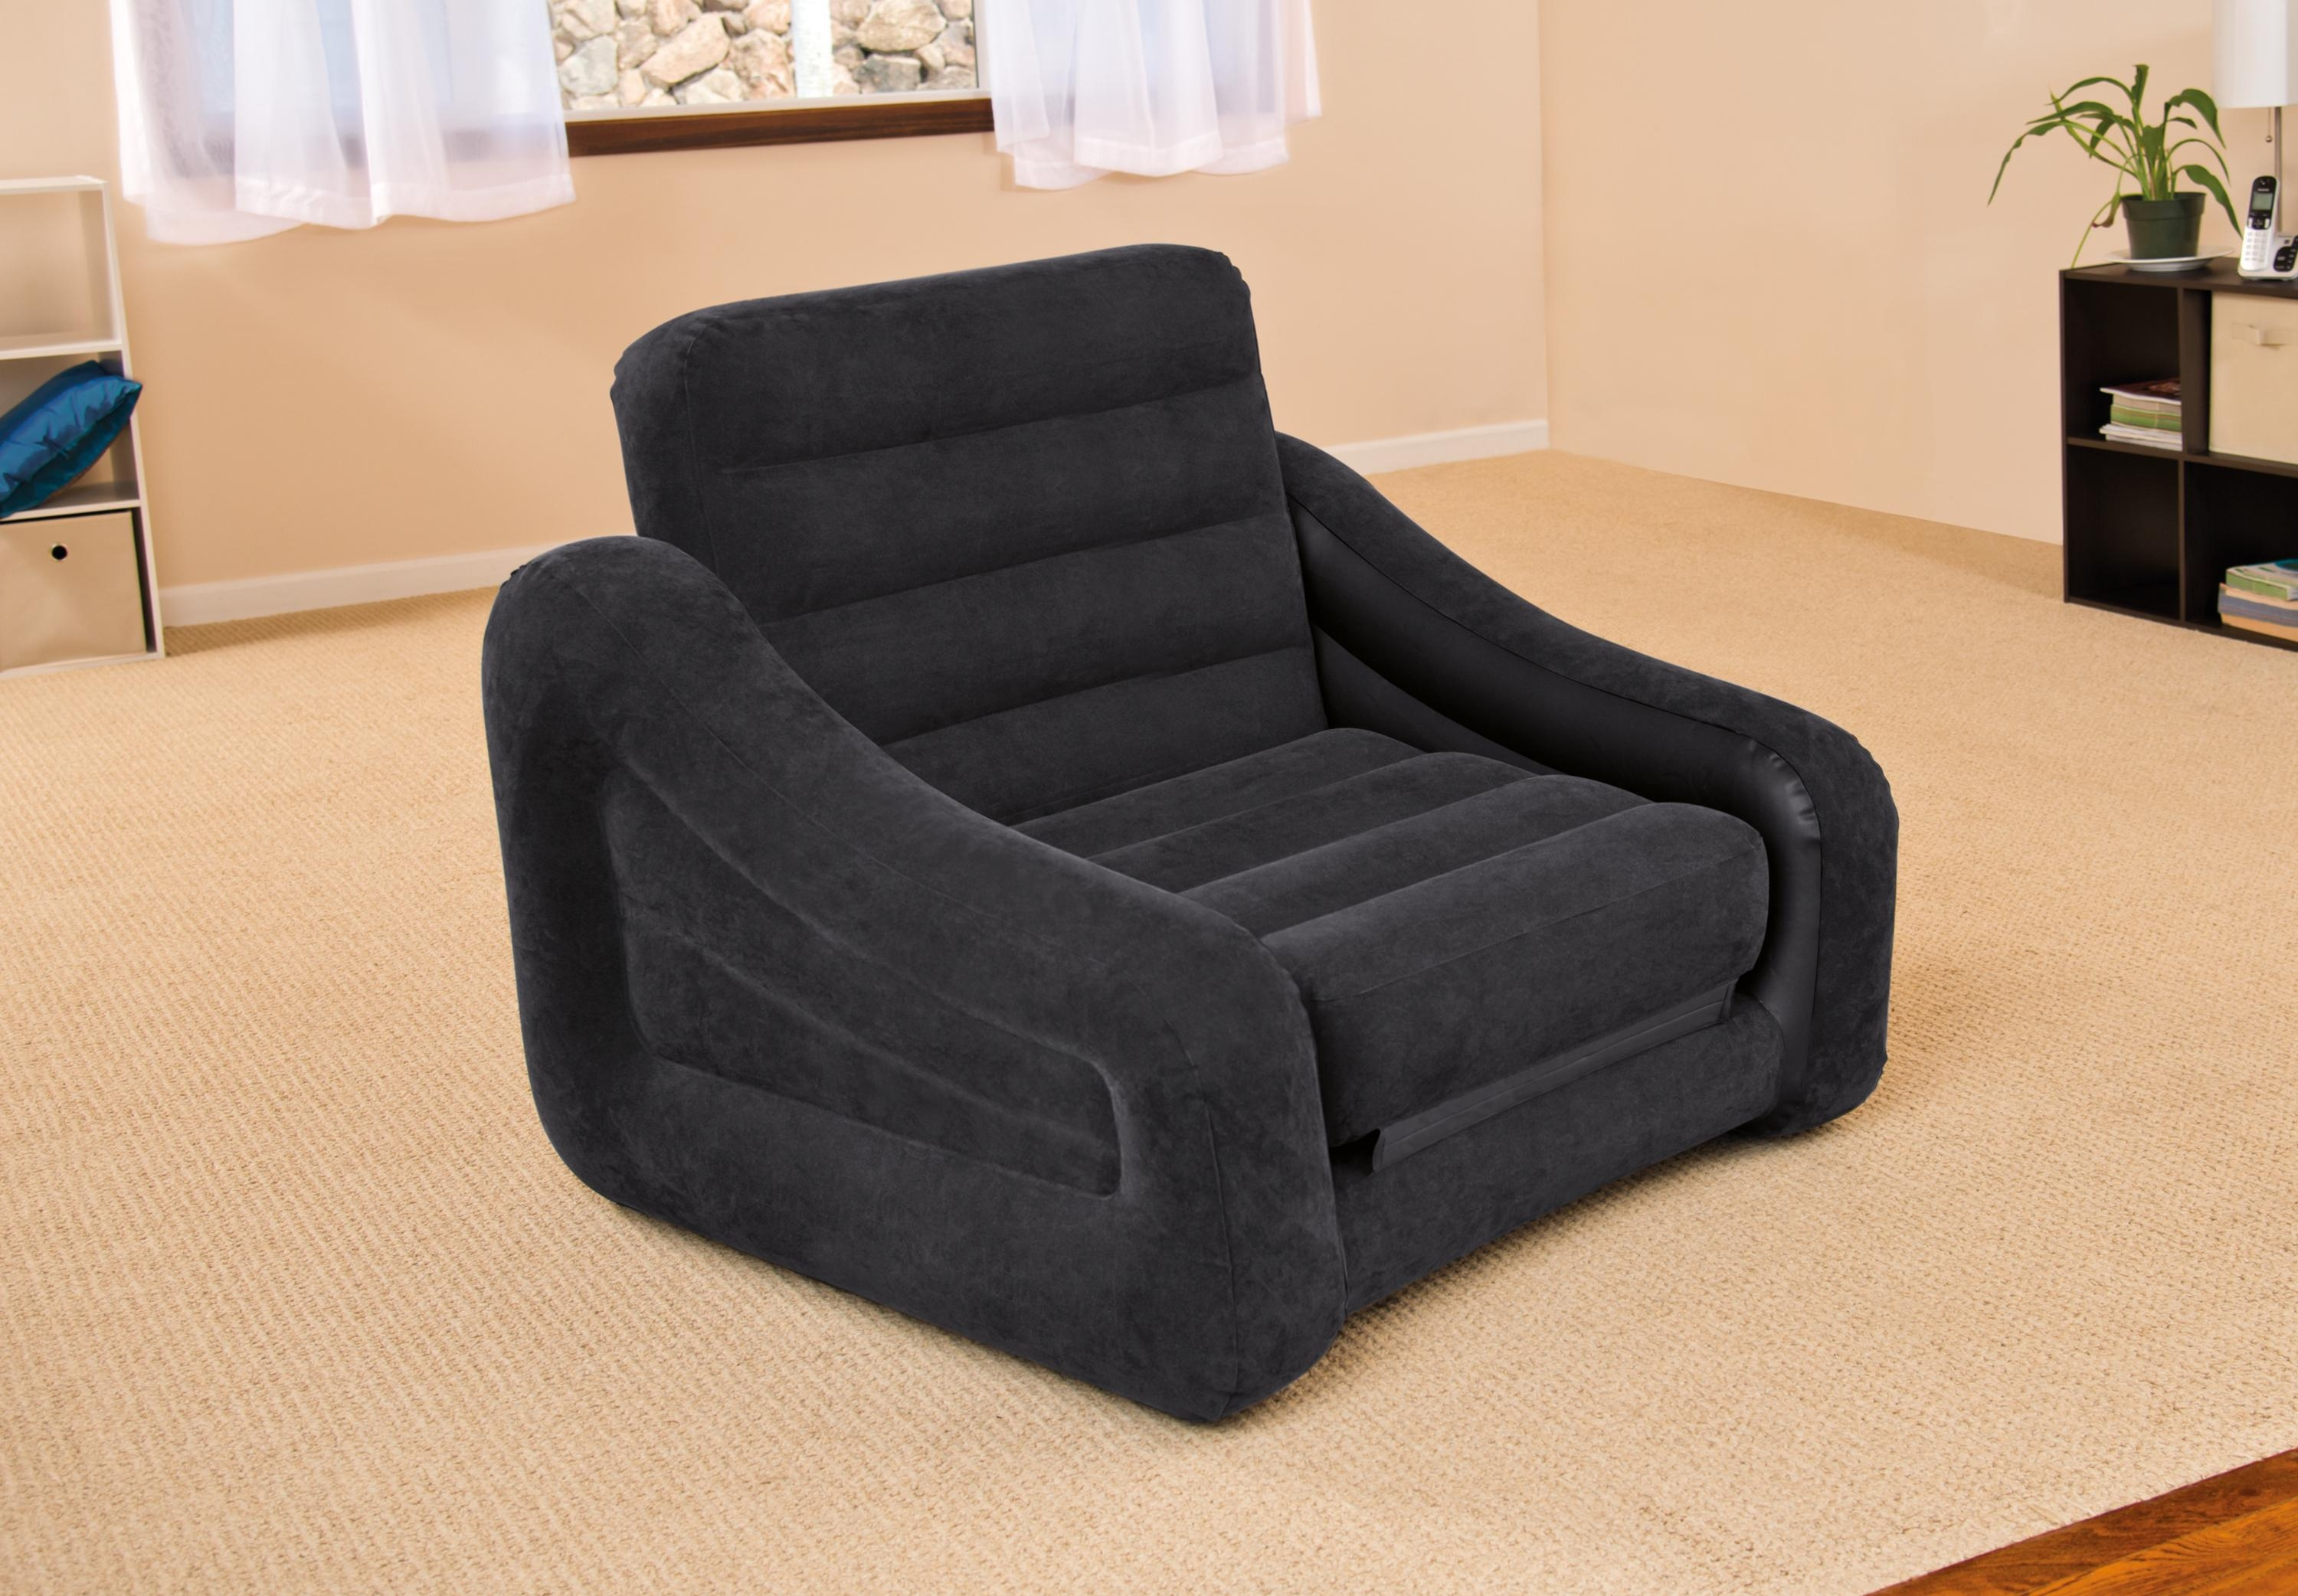 Intex Inflatable Air Chair With Pull Out Twin Bed Mattress Sleeper Throughout Intex Queen Sleeper Sofas (Image 5 of 20)